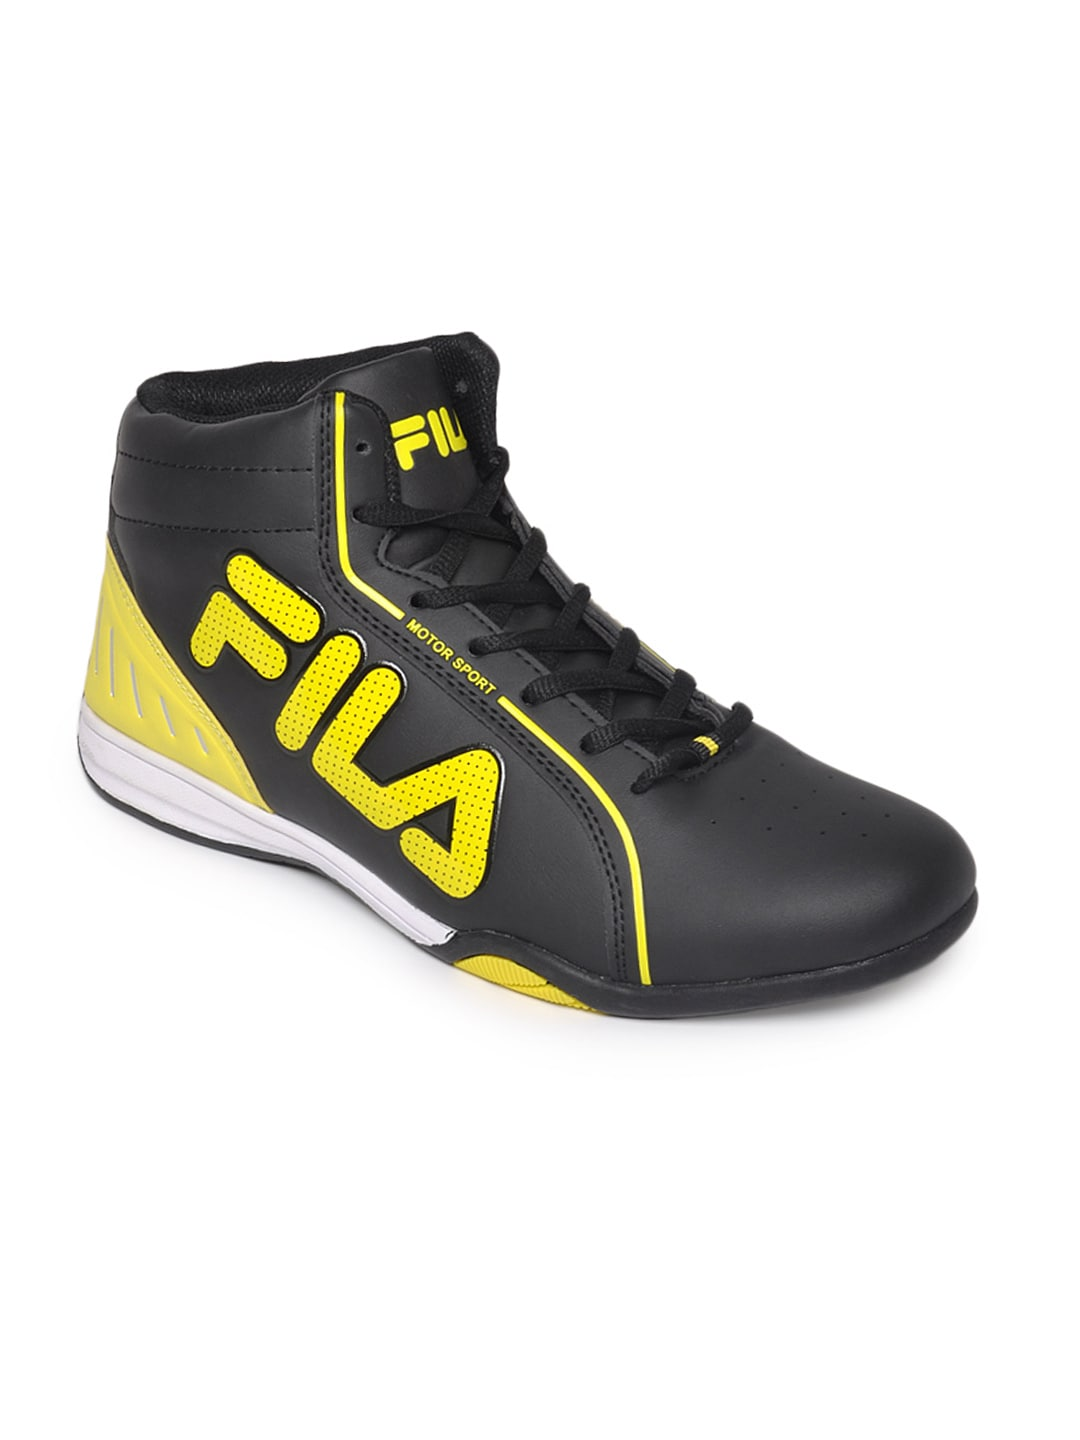 buy fila black isonzo sports shoes sports shoes for